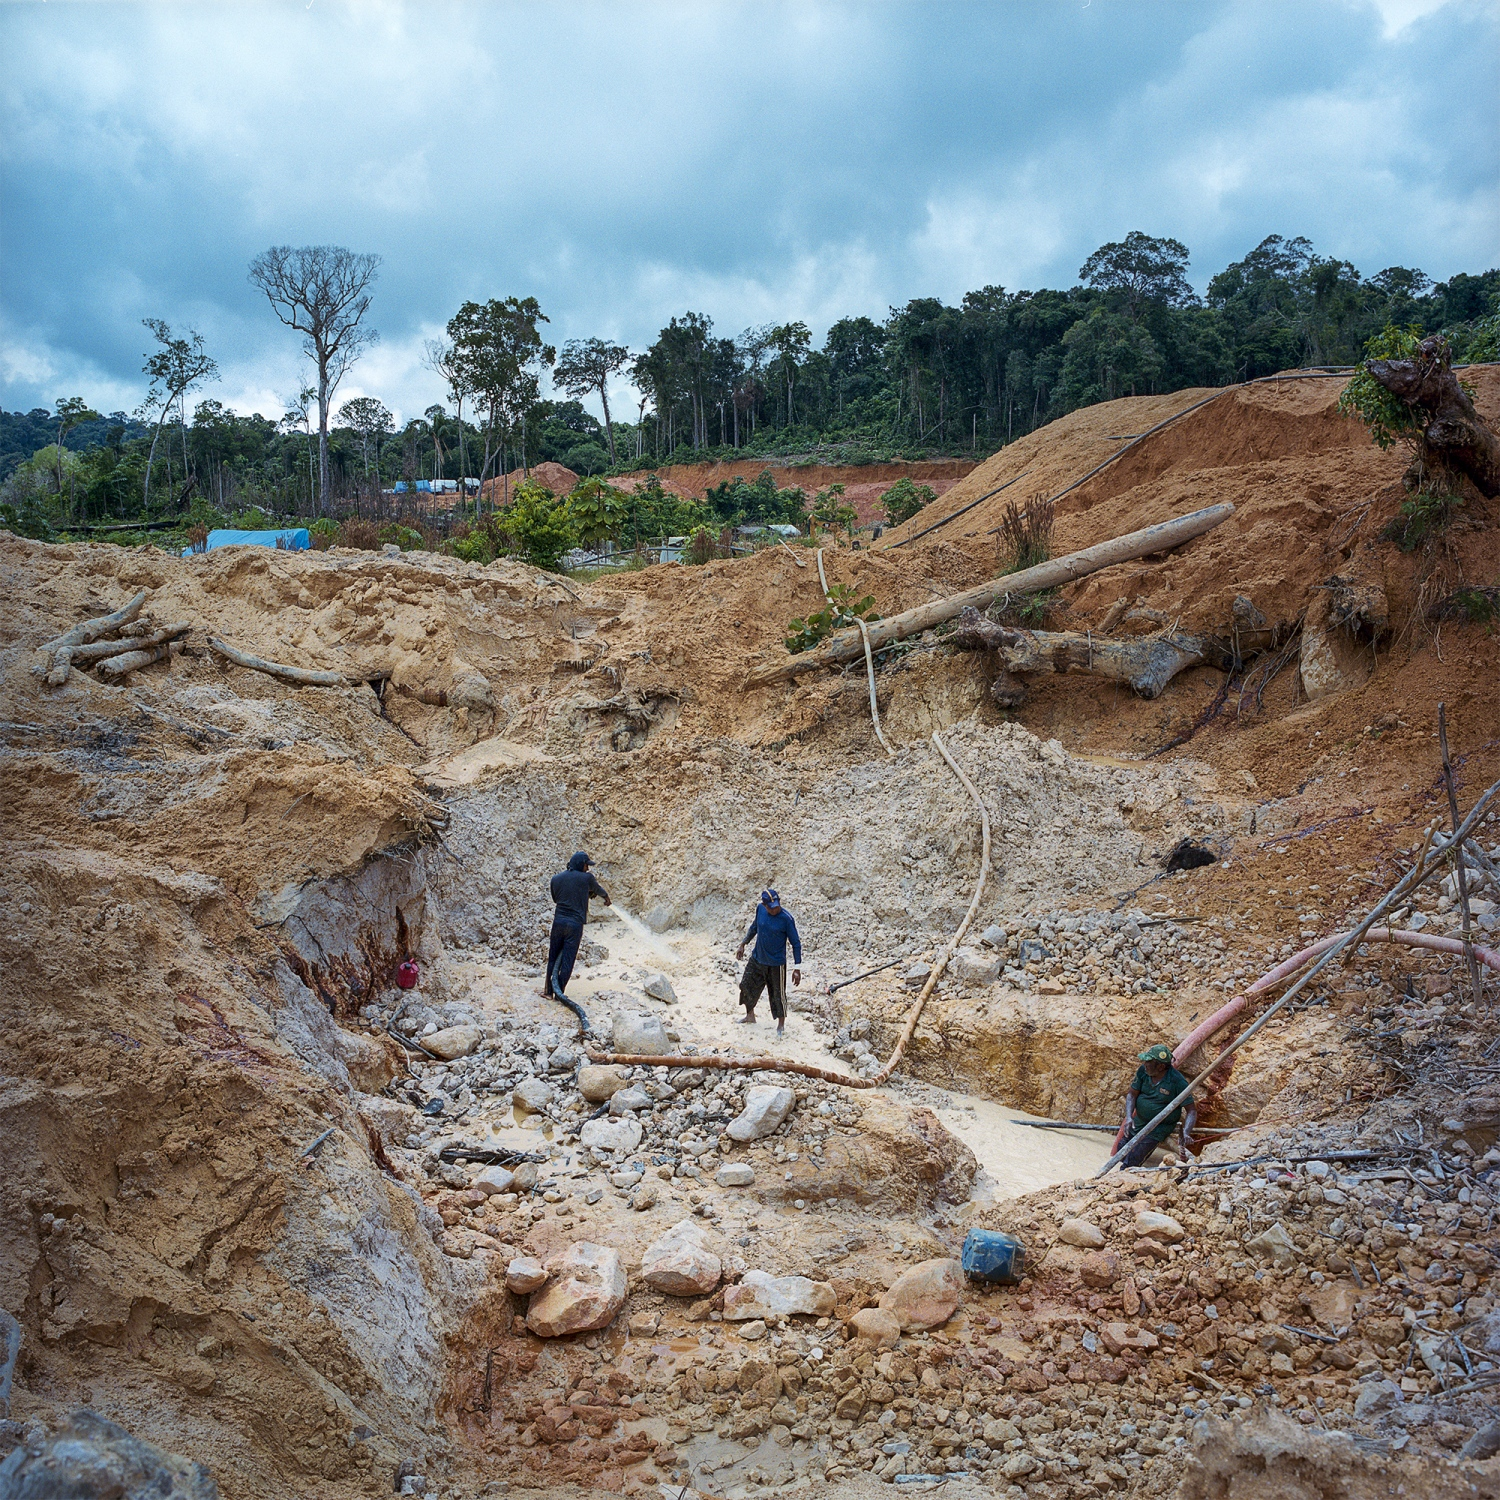 2016.  Garimpero or artisinal gold and diamond miners work at mine called Chapeo du Sol on the Tapajos River in Para State, Brazil. Much of the energy from new hydroelectric projects is planned to power large scale mining projects within the Amazon such as the proposed Belo Sun gold mine near Belo Monte. /Aaron Vincent Elkaim